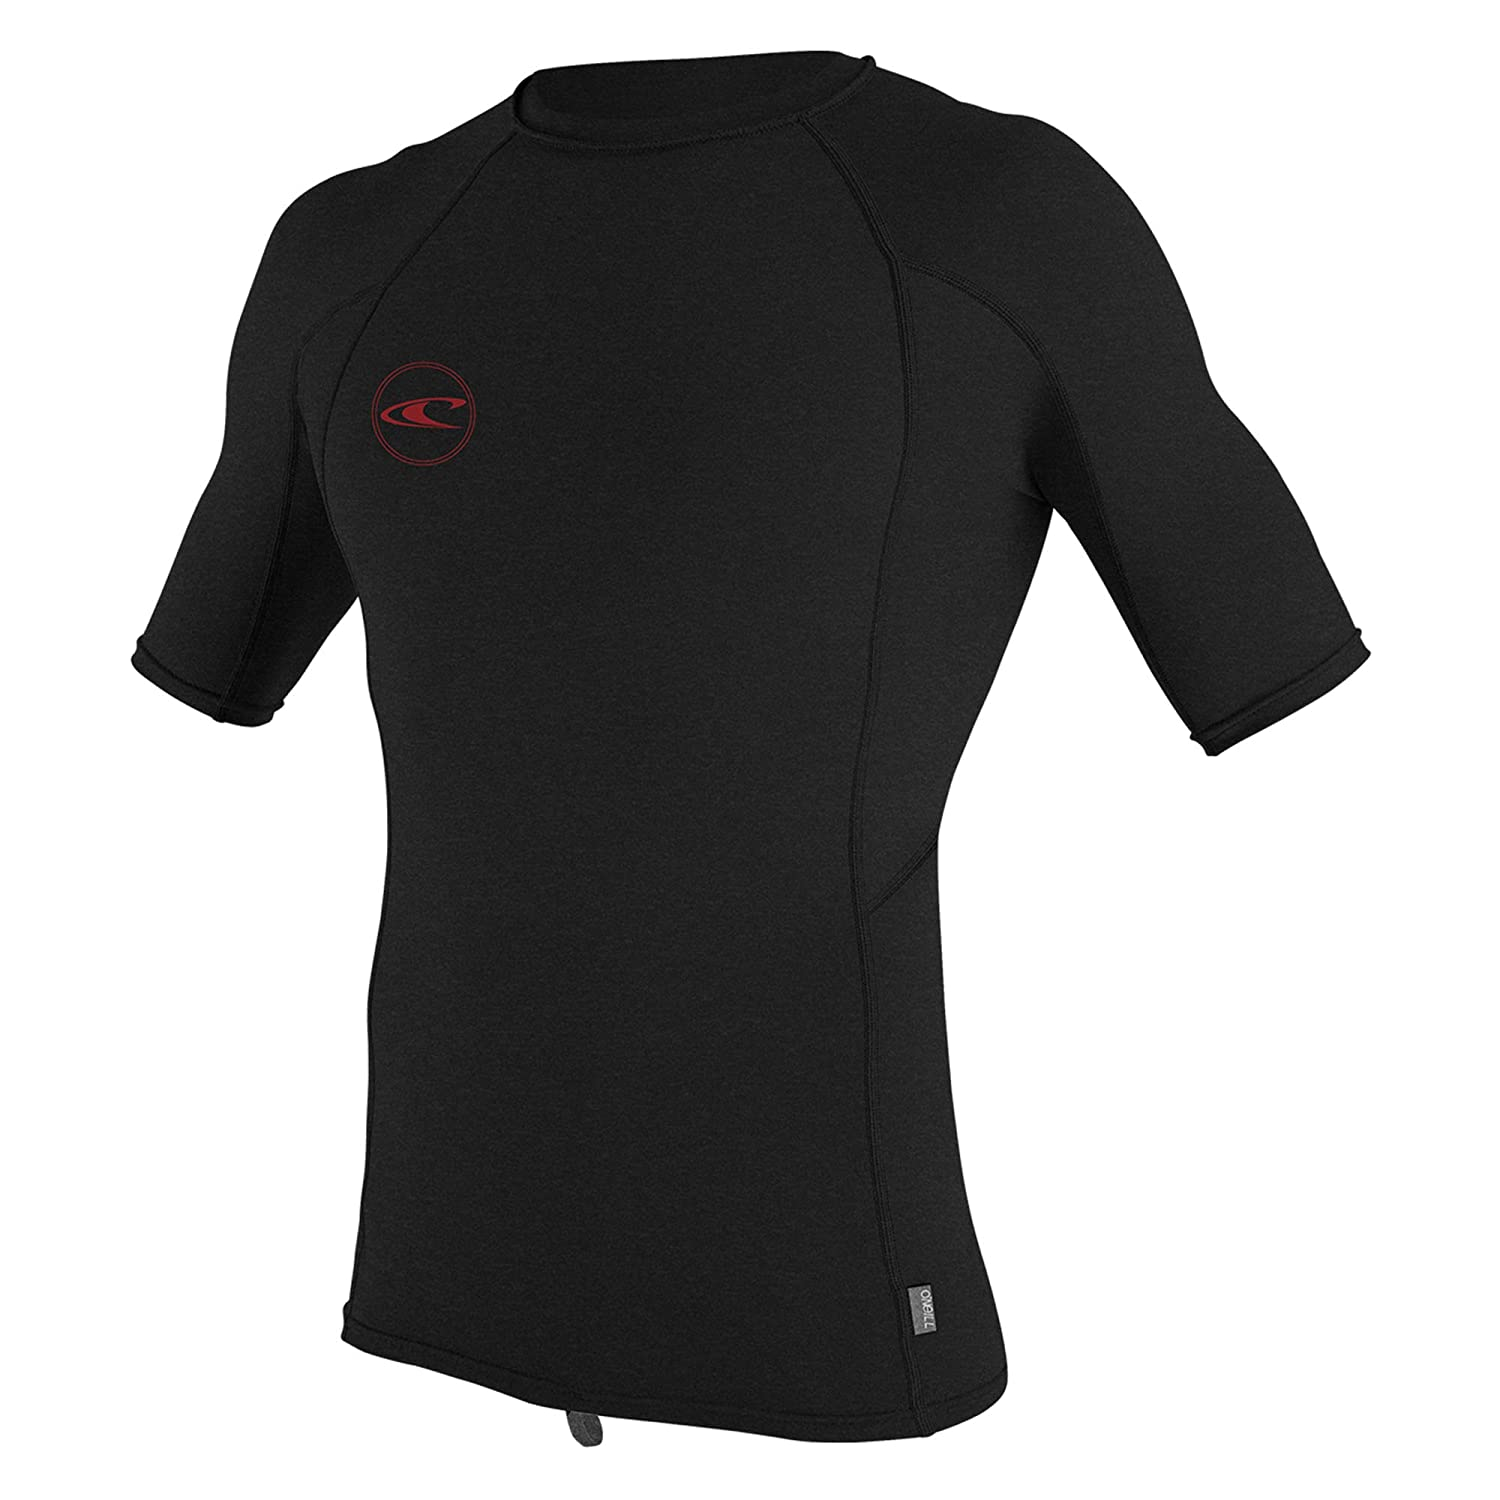 O'Neill Men's Basic Skins UPF 50 Short Sleeve Rash Guard